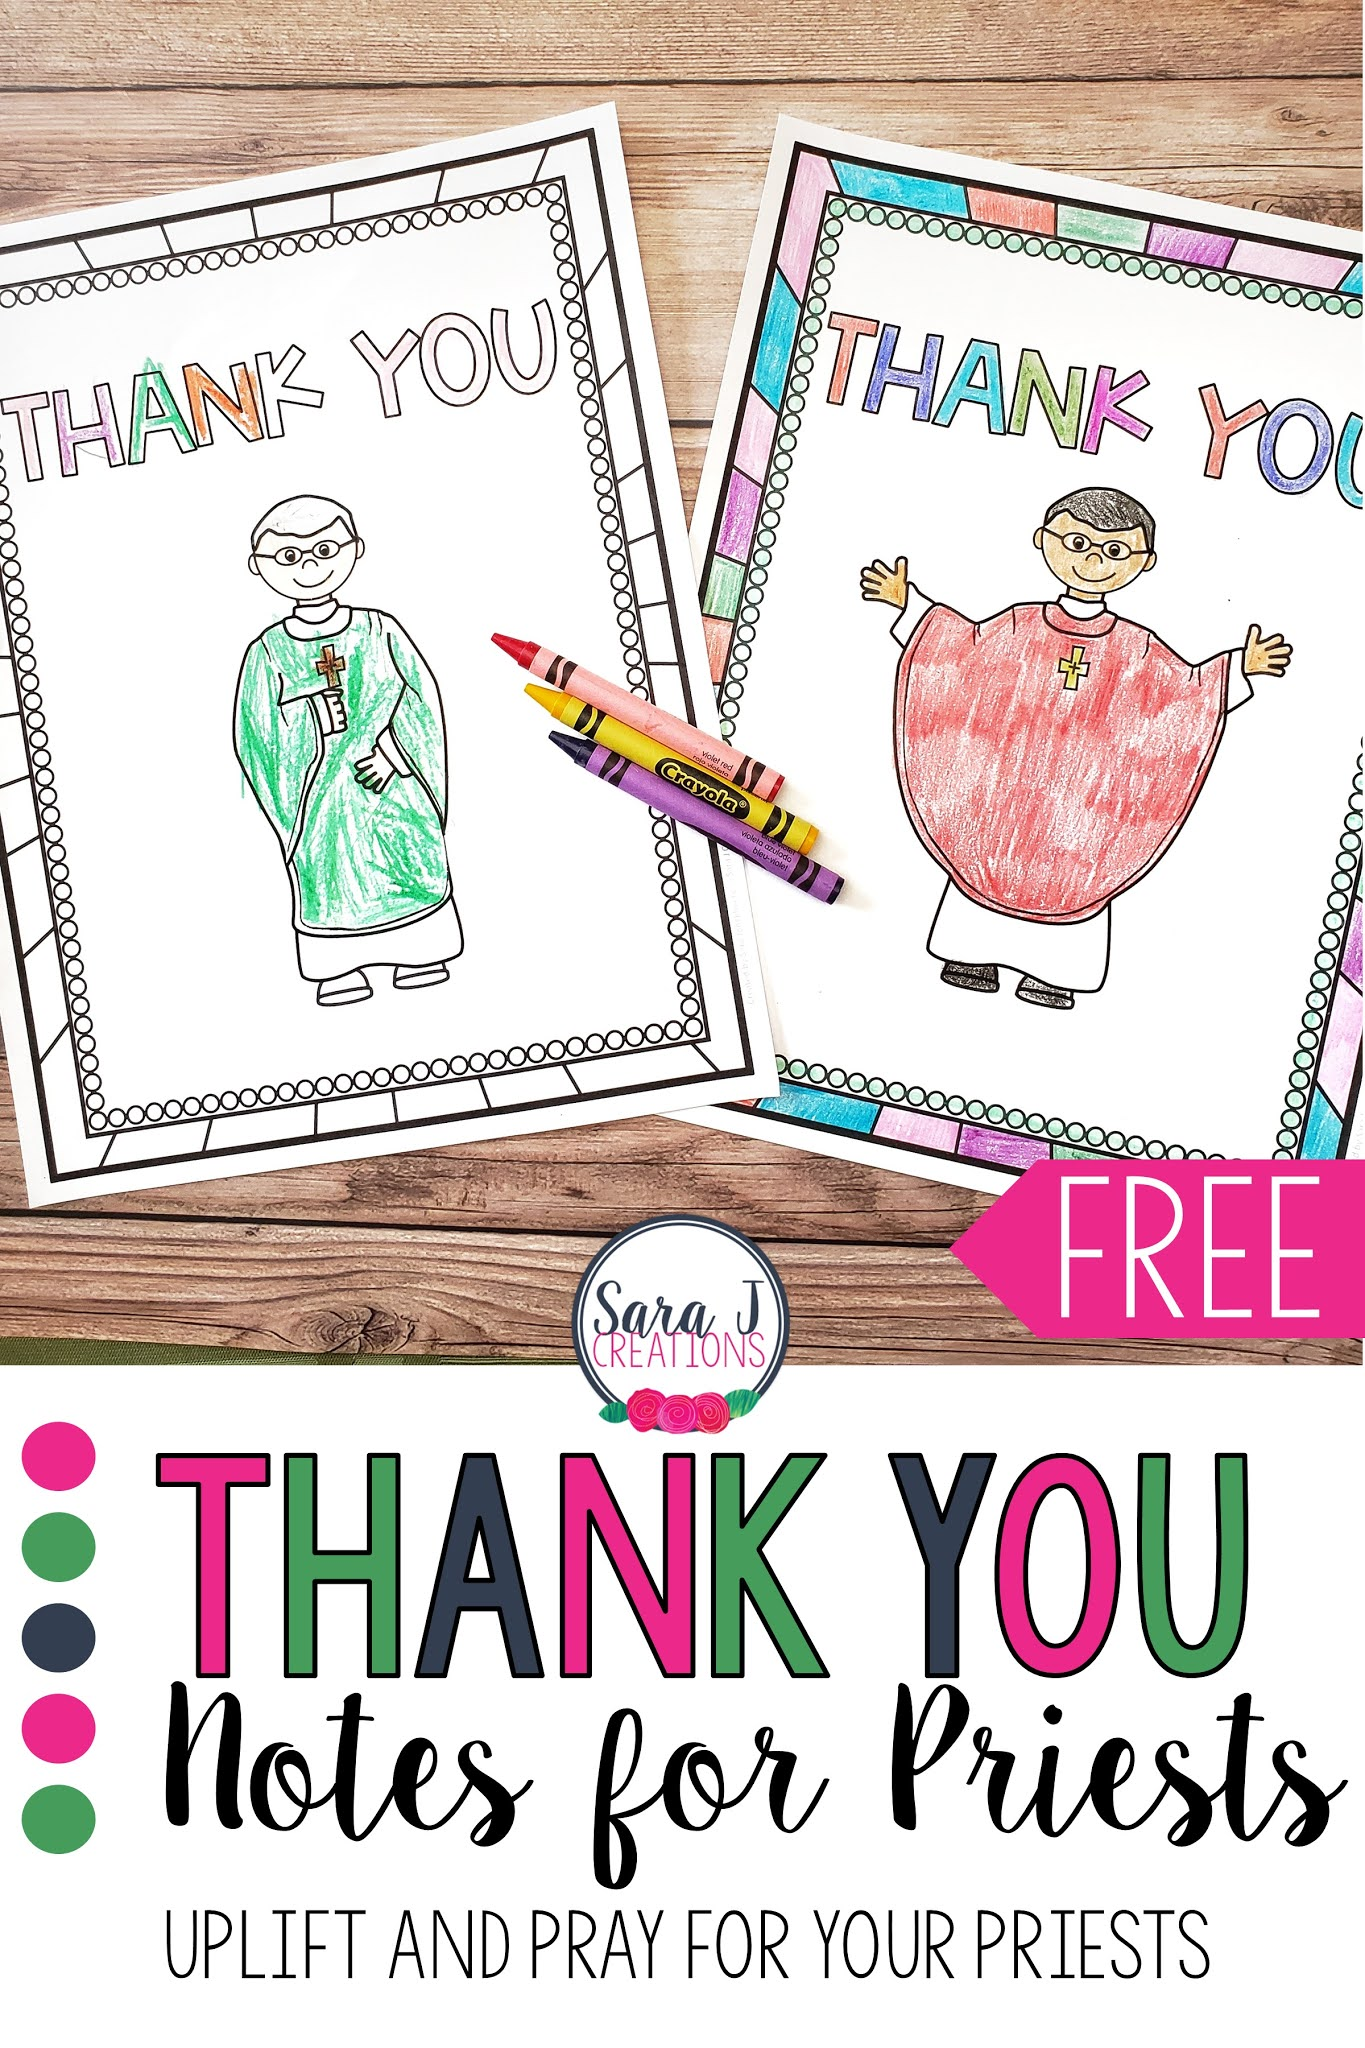 Help your students stay connected to the members of their church with these FREE thank you cards for priests!